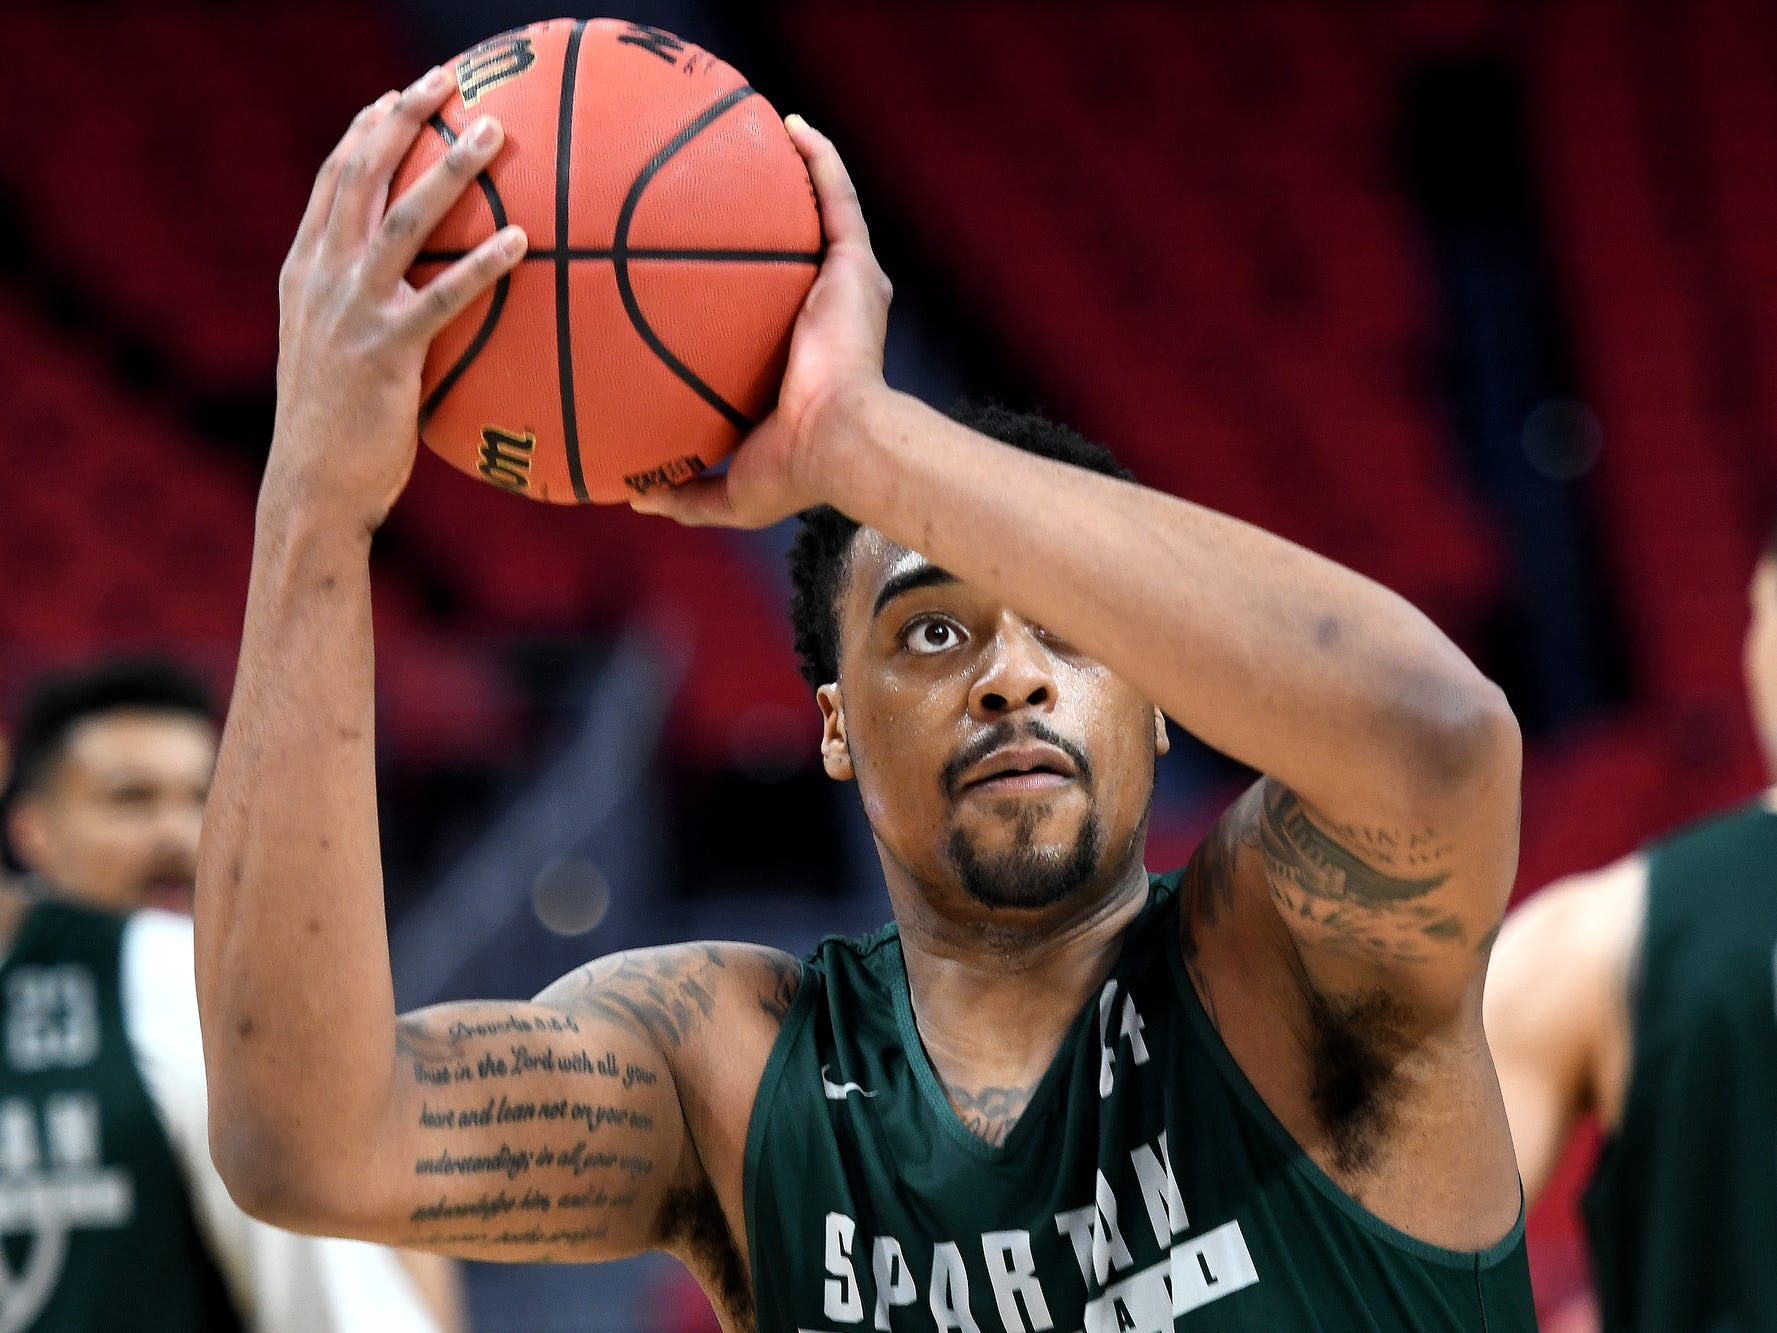 Michigan State's Nick Ward shoots during an open practice on Thursday, March 15, 2018, at the Little Caesars Arena in Detroit.